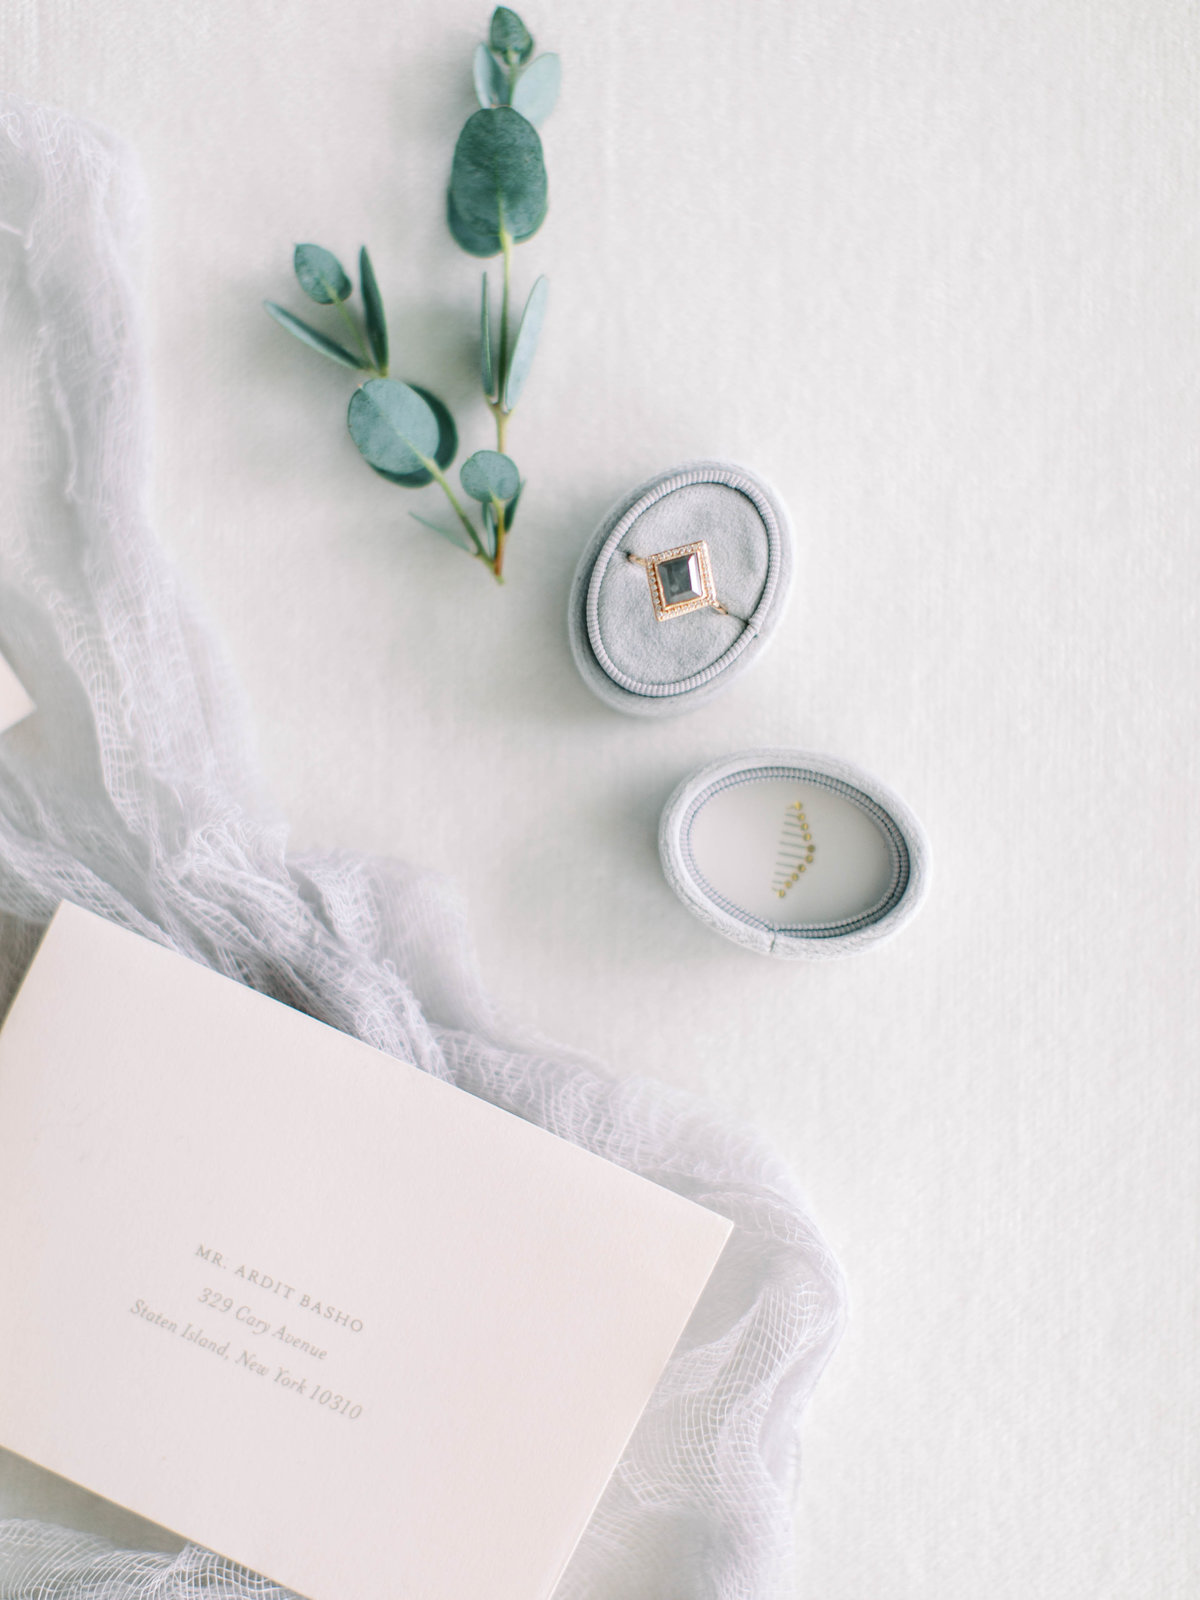 Wedding invitation and engagement ring flat lay photography for wedding